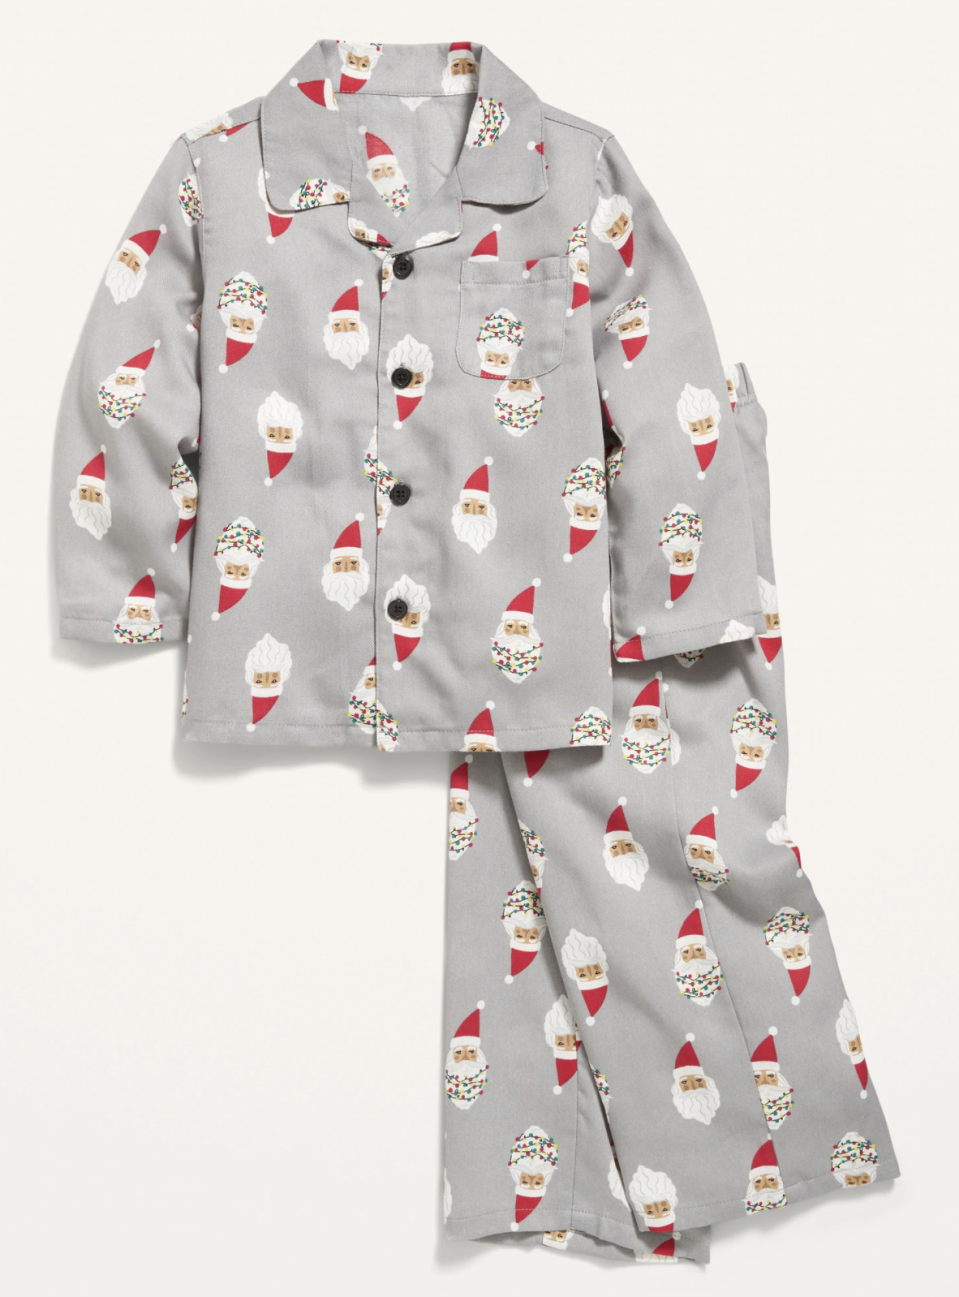 Unisex Holiday-Print Pajama Set for Toddler & Baby available at Old Navy,